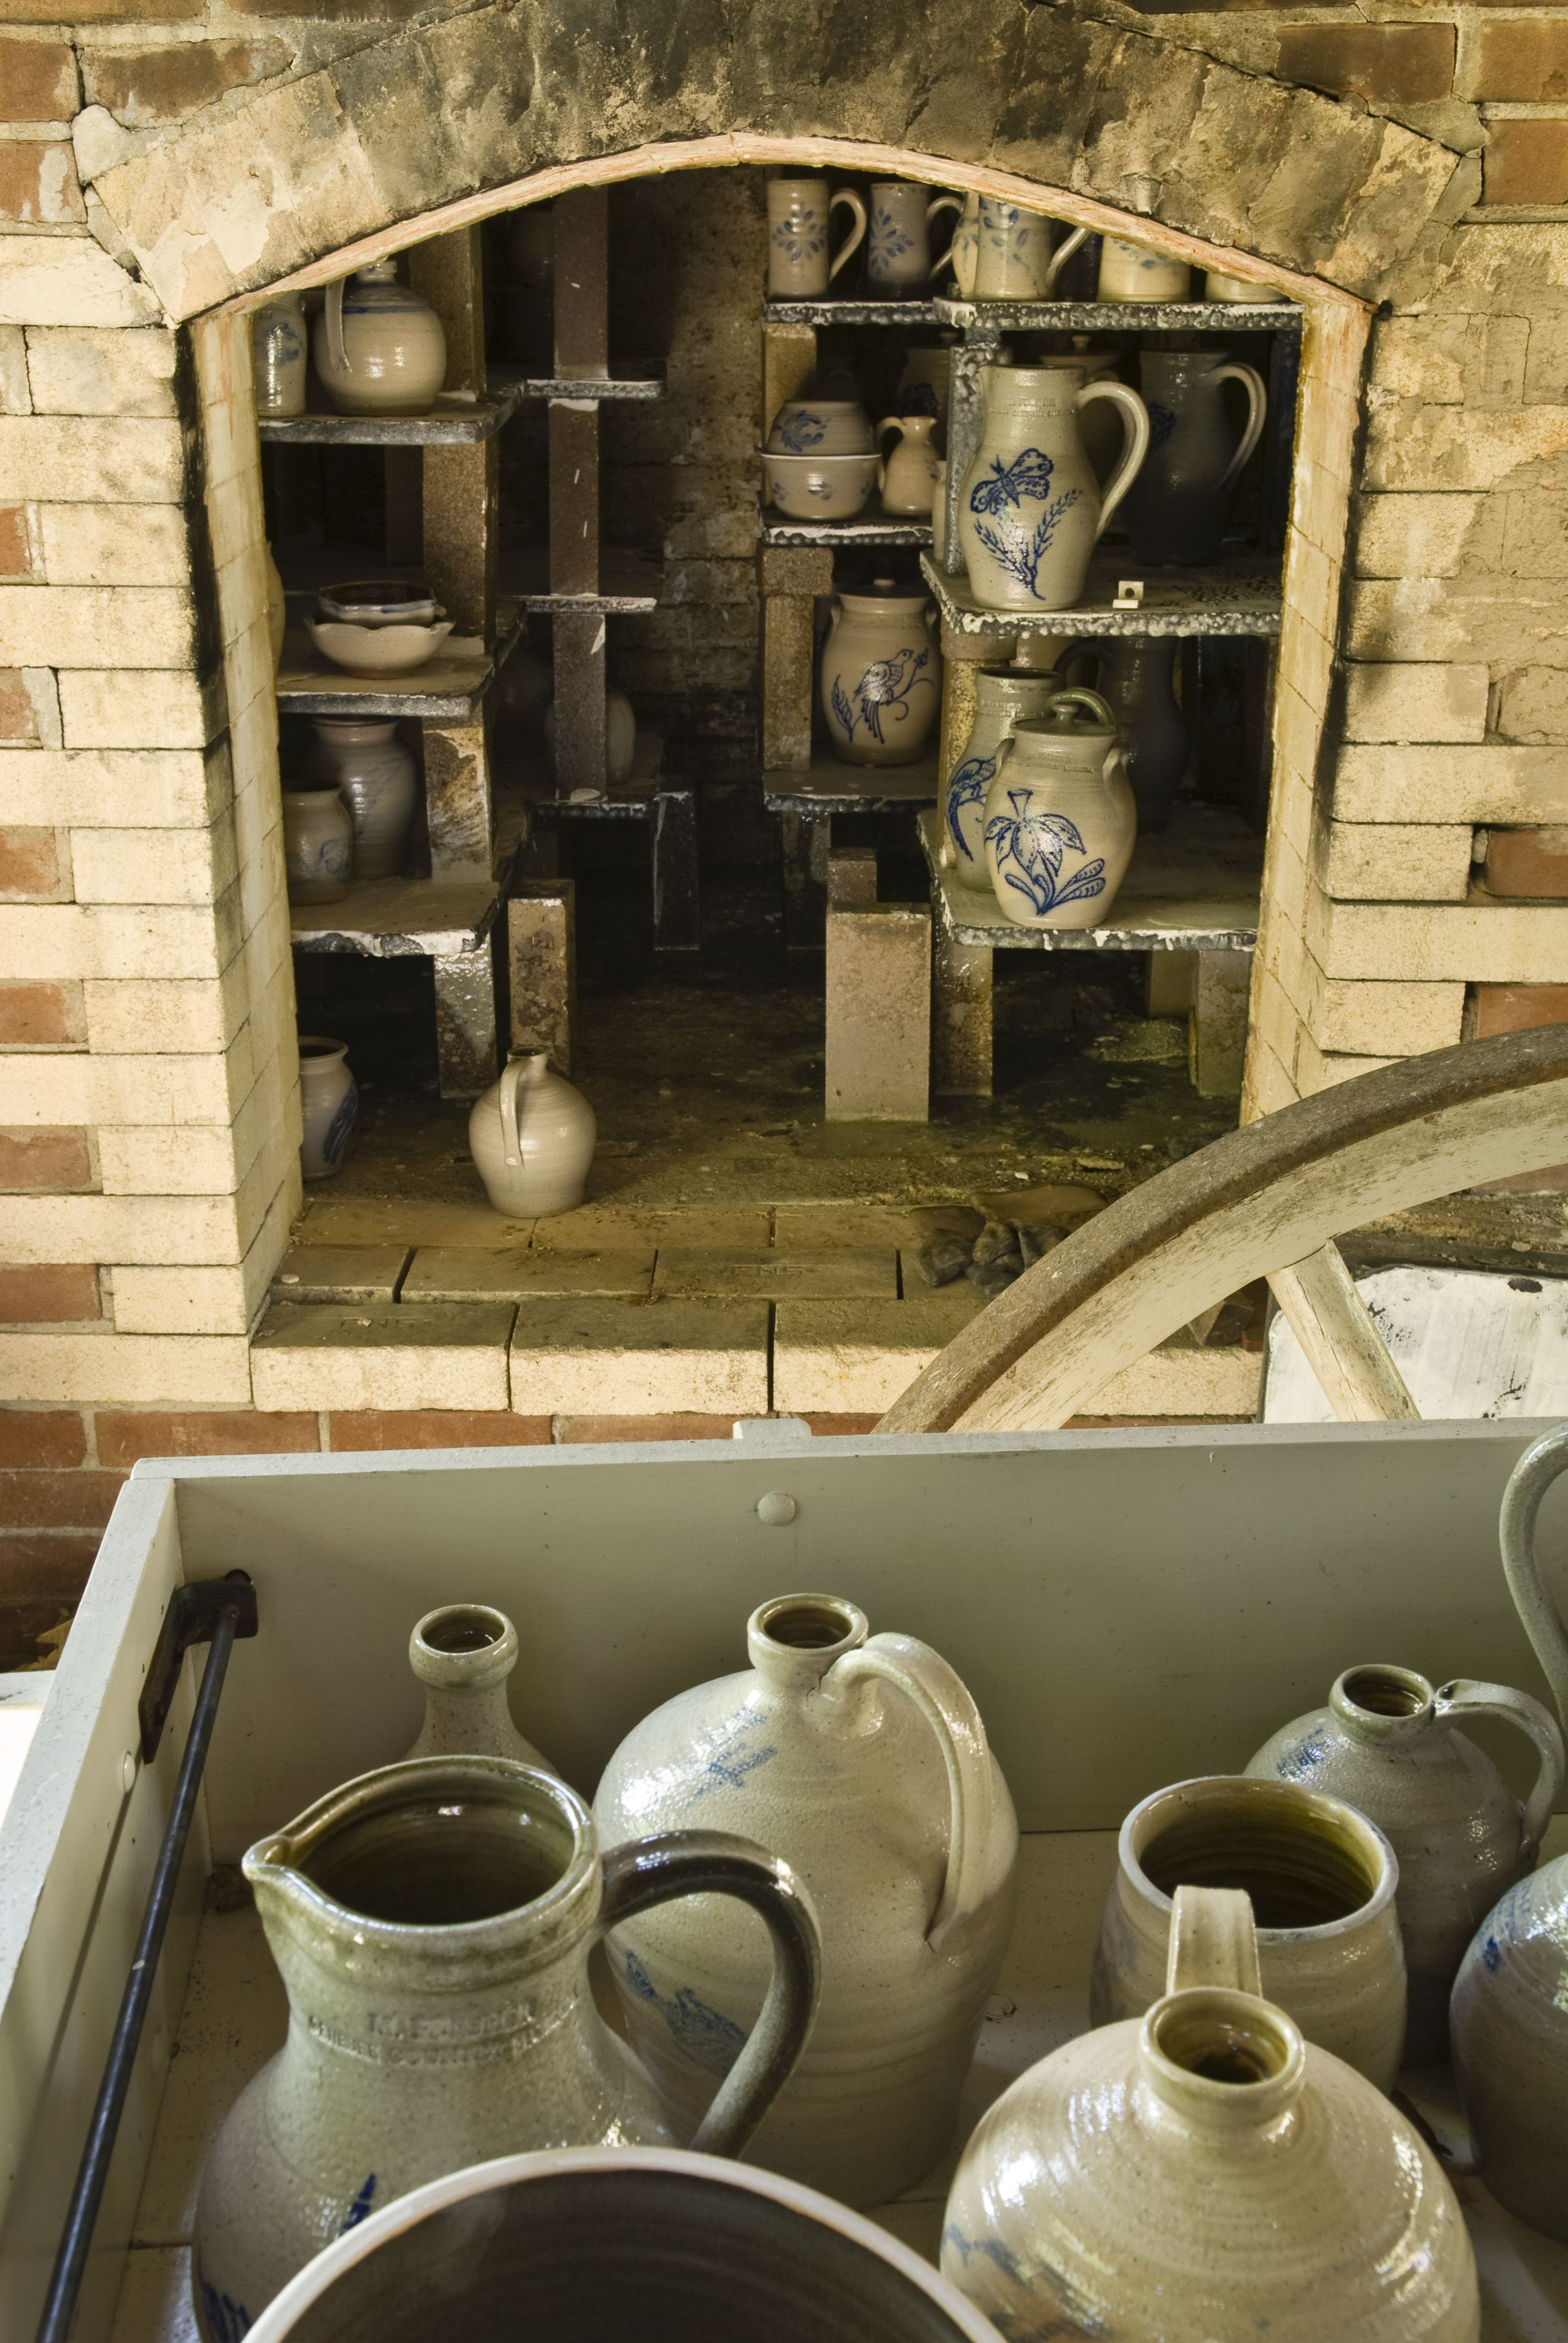 The Pottery Inside View Of The Kiln For The Salt Glaze Firing At The Genesee Country Village Museum Loyd Heath Photography Pottery Kiln Pottery Museum